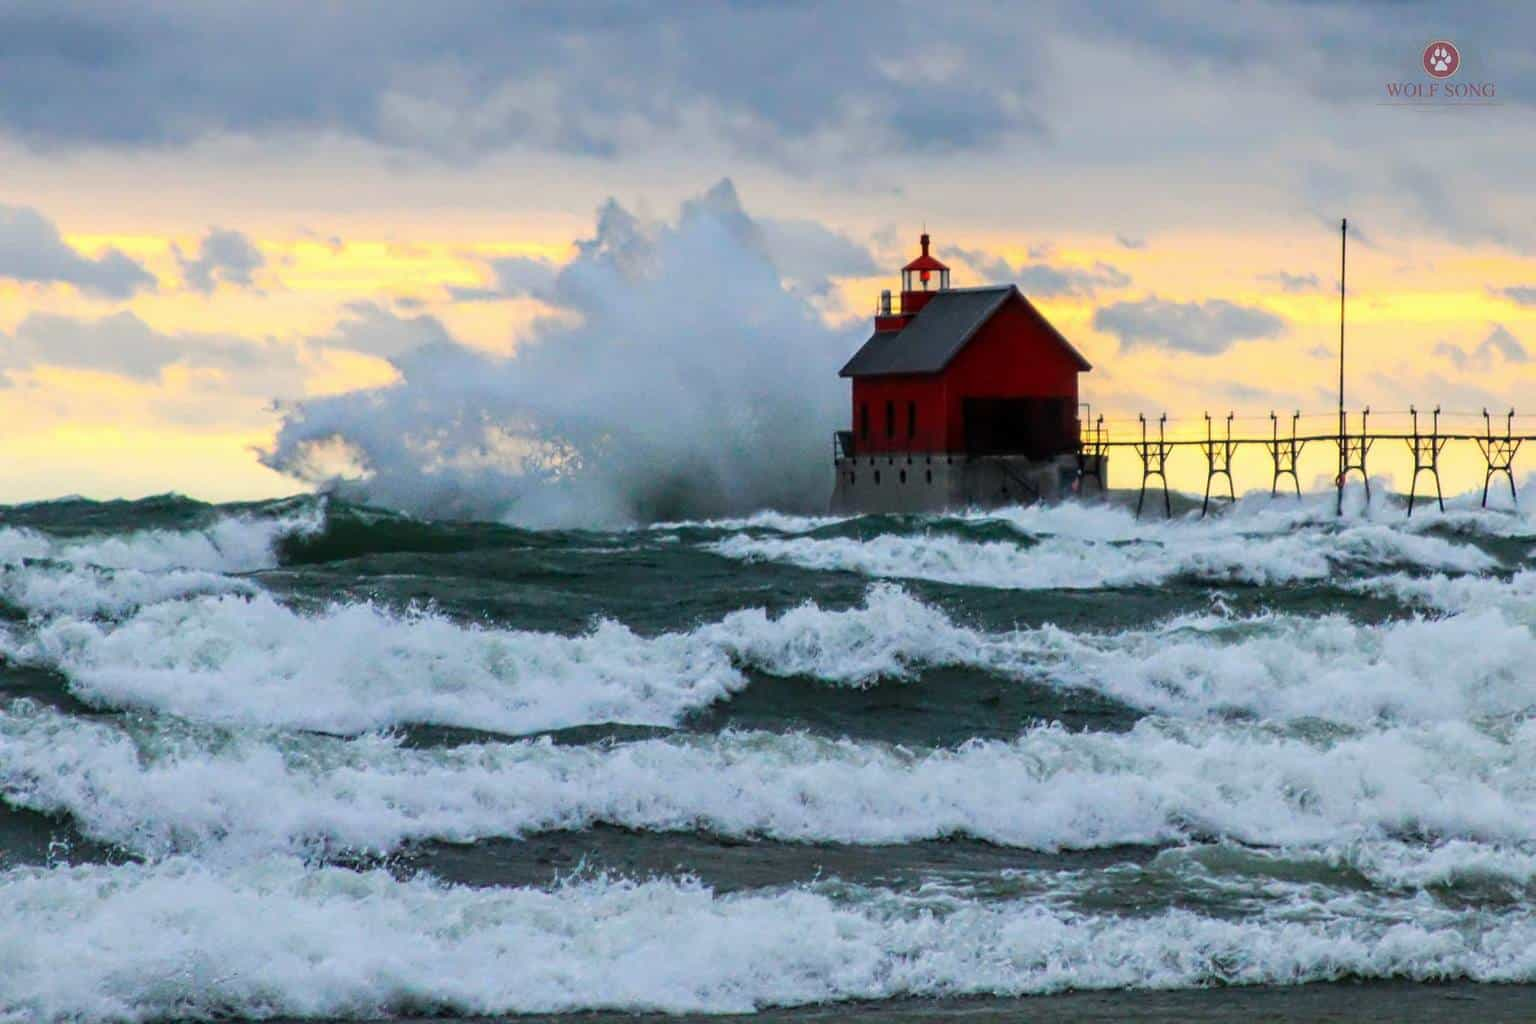 Here is a shot from the wind storm that hit the midwest last Thursday. This is in Grand Haven MI. I love opportunities to shoot weather related events!